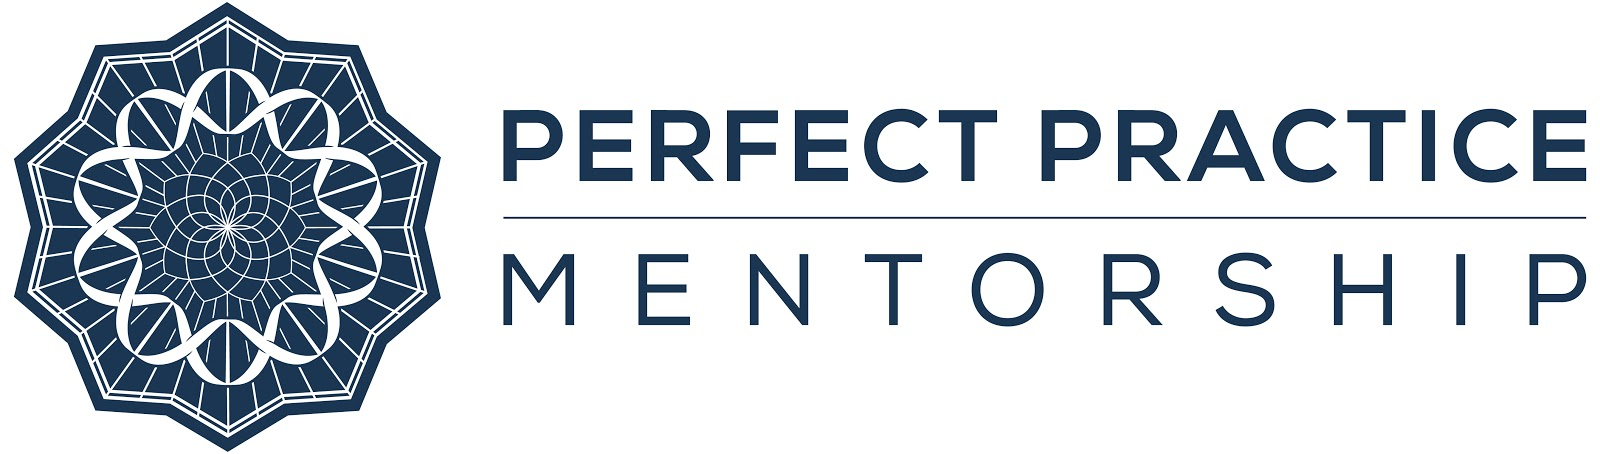 Perfect Practice Mentor Session